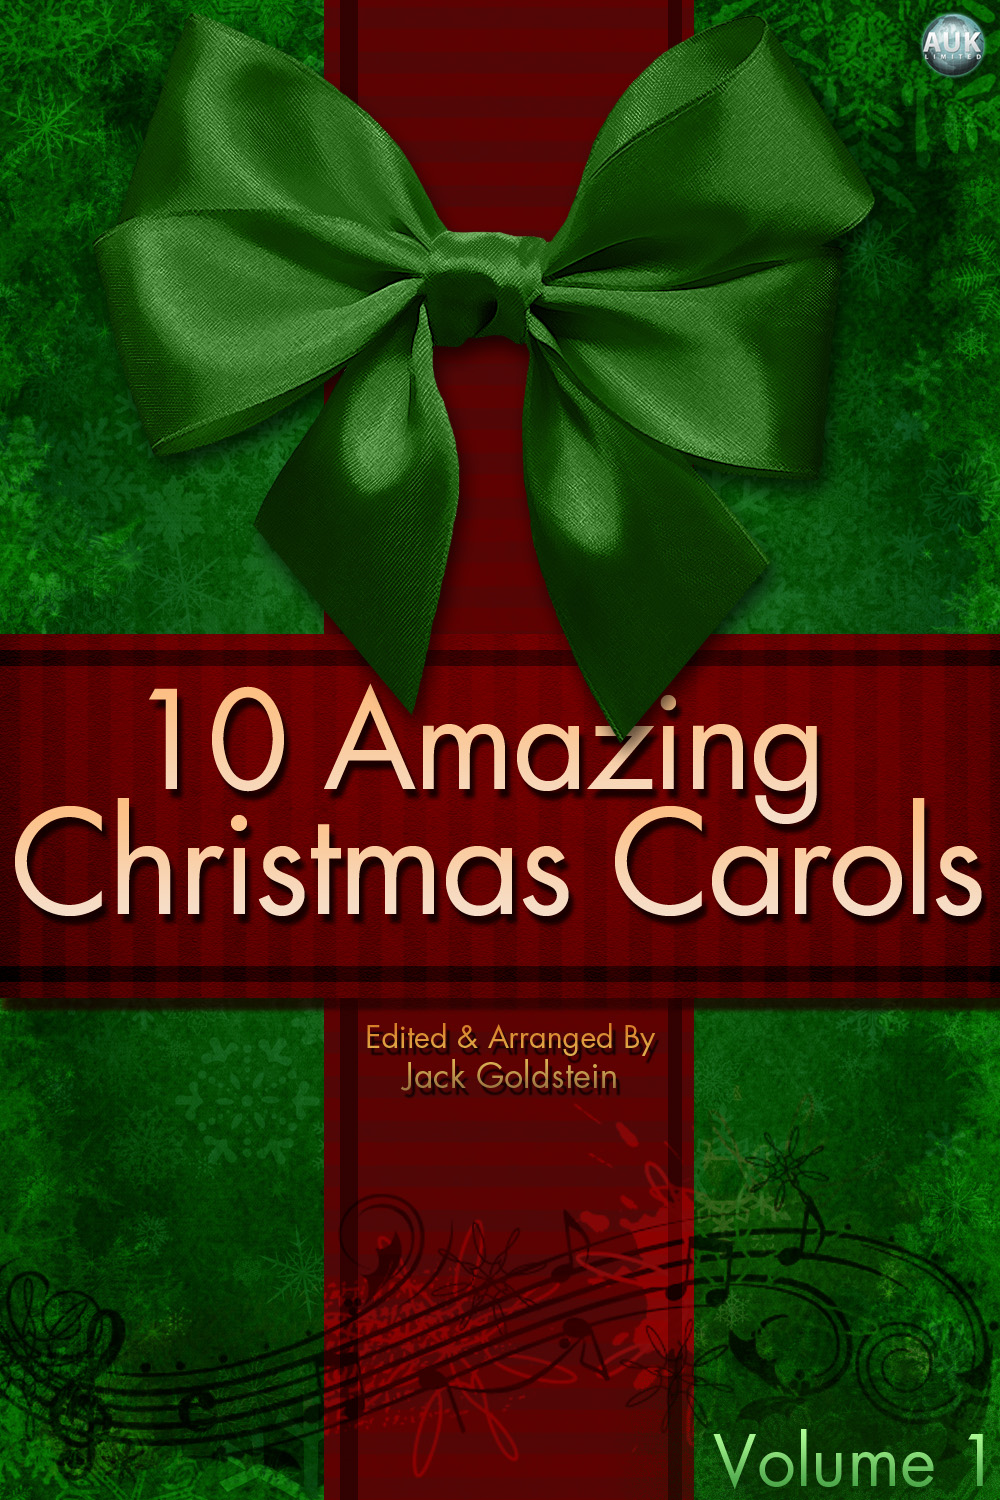 10 Amazing Christmas Carols - Volume 1